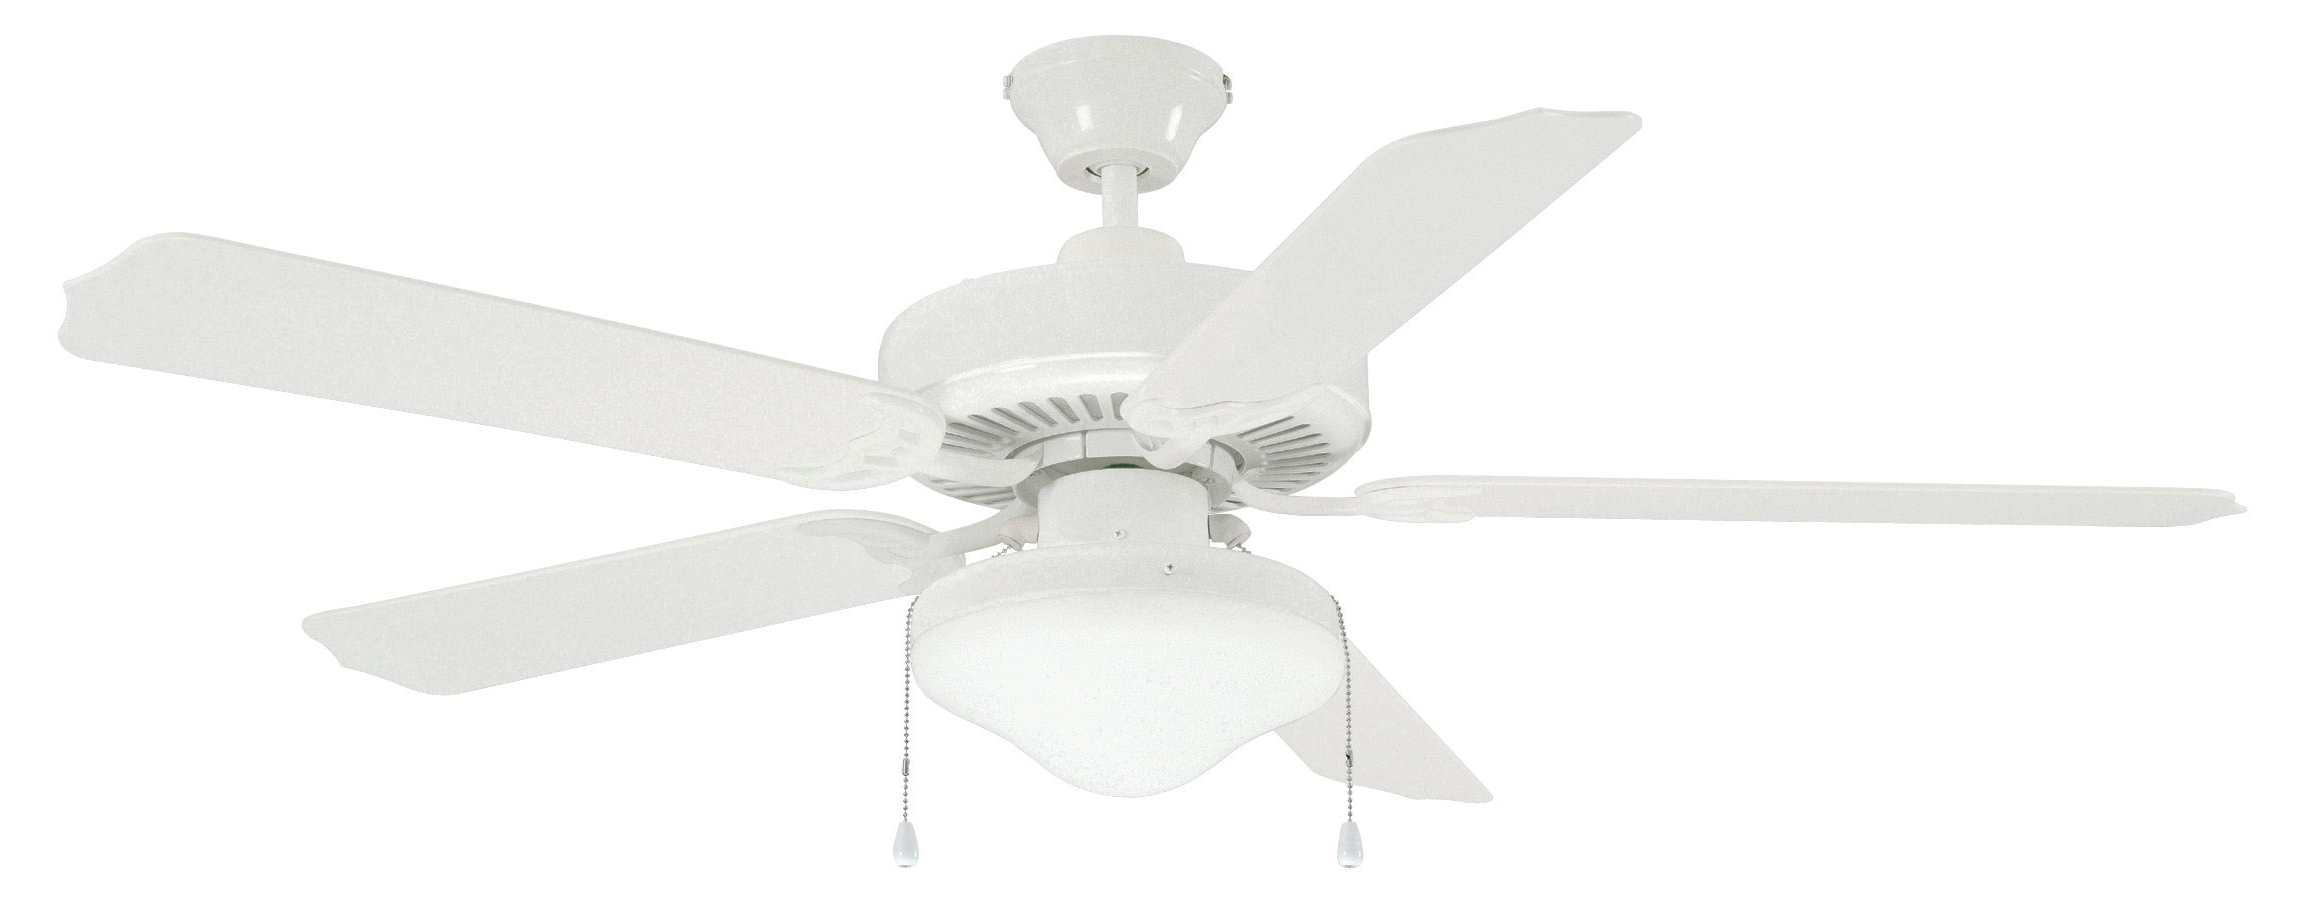 Ceiling Fans White Ceiling Fan With Light Cruise Outdoor Wet Rated Throughout 2018 White Outdoor Ceiling Fans (Gallery 15 of 20)